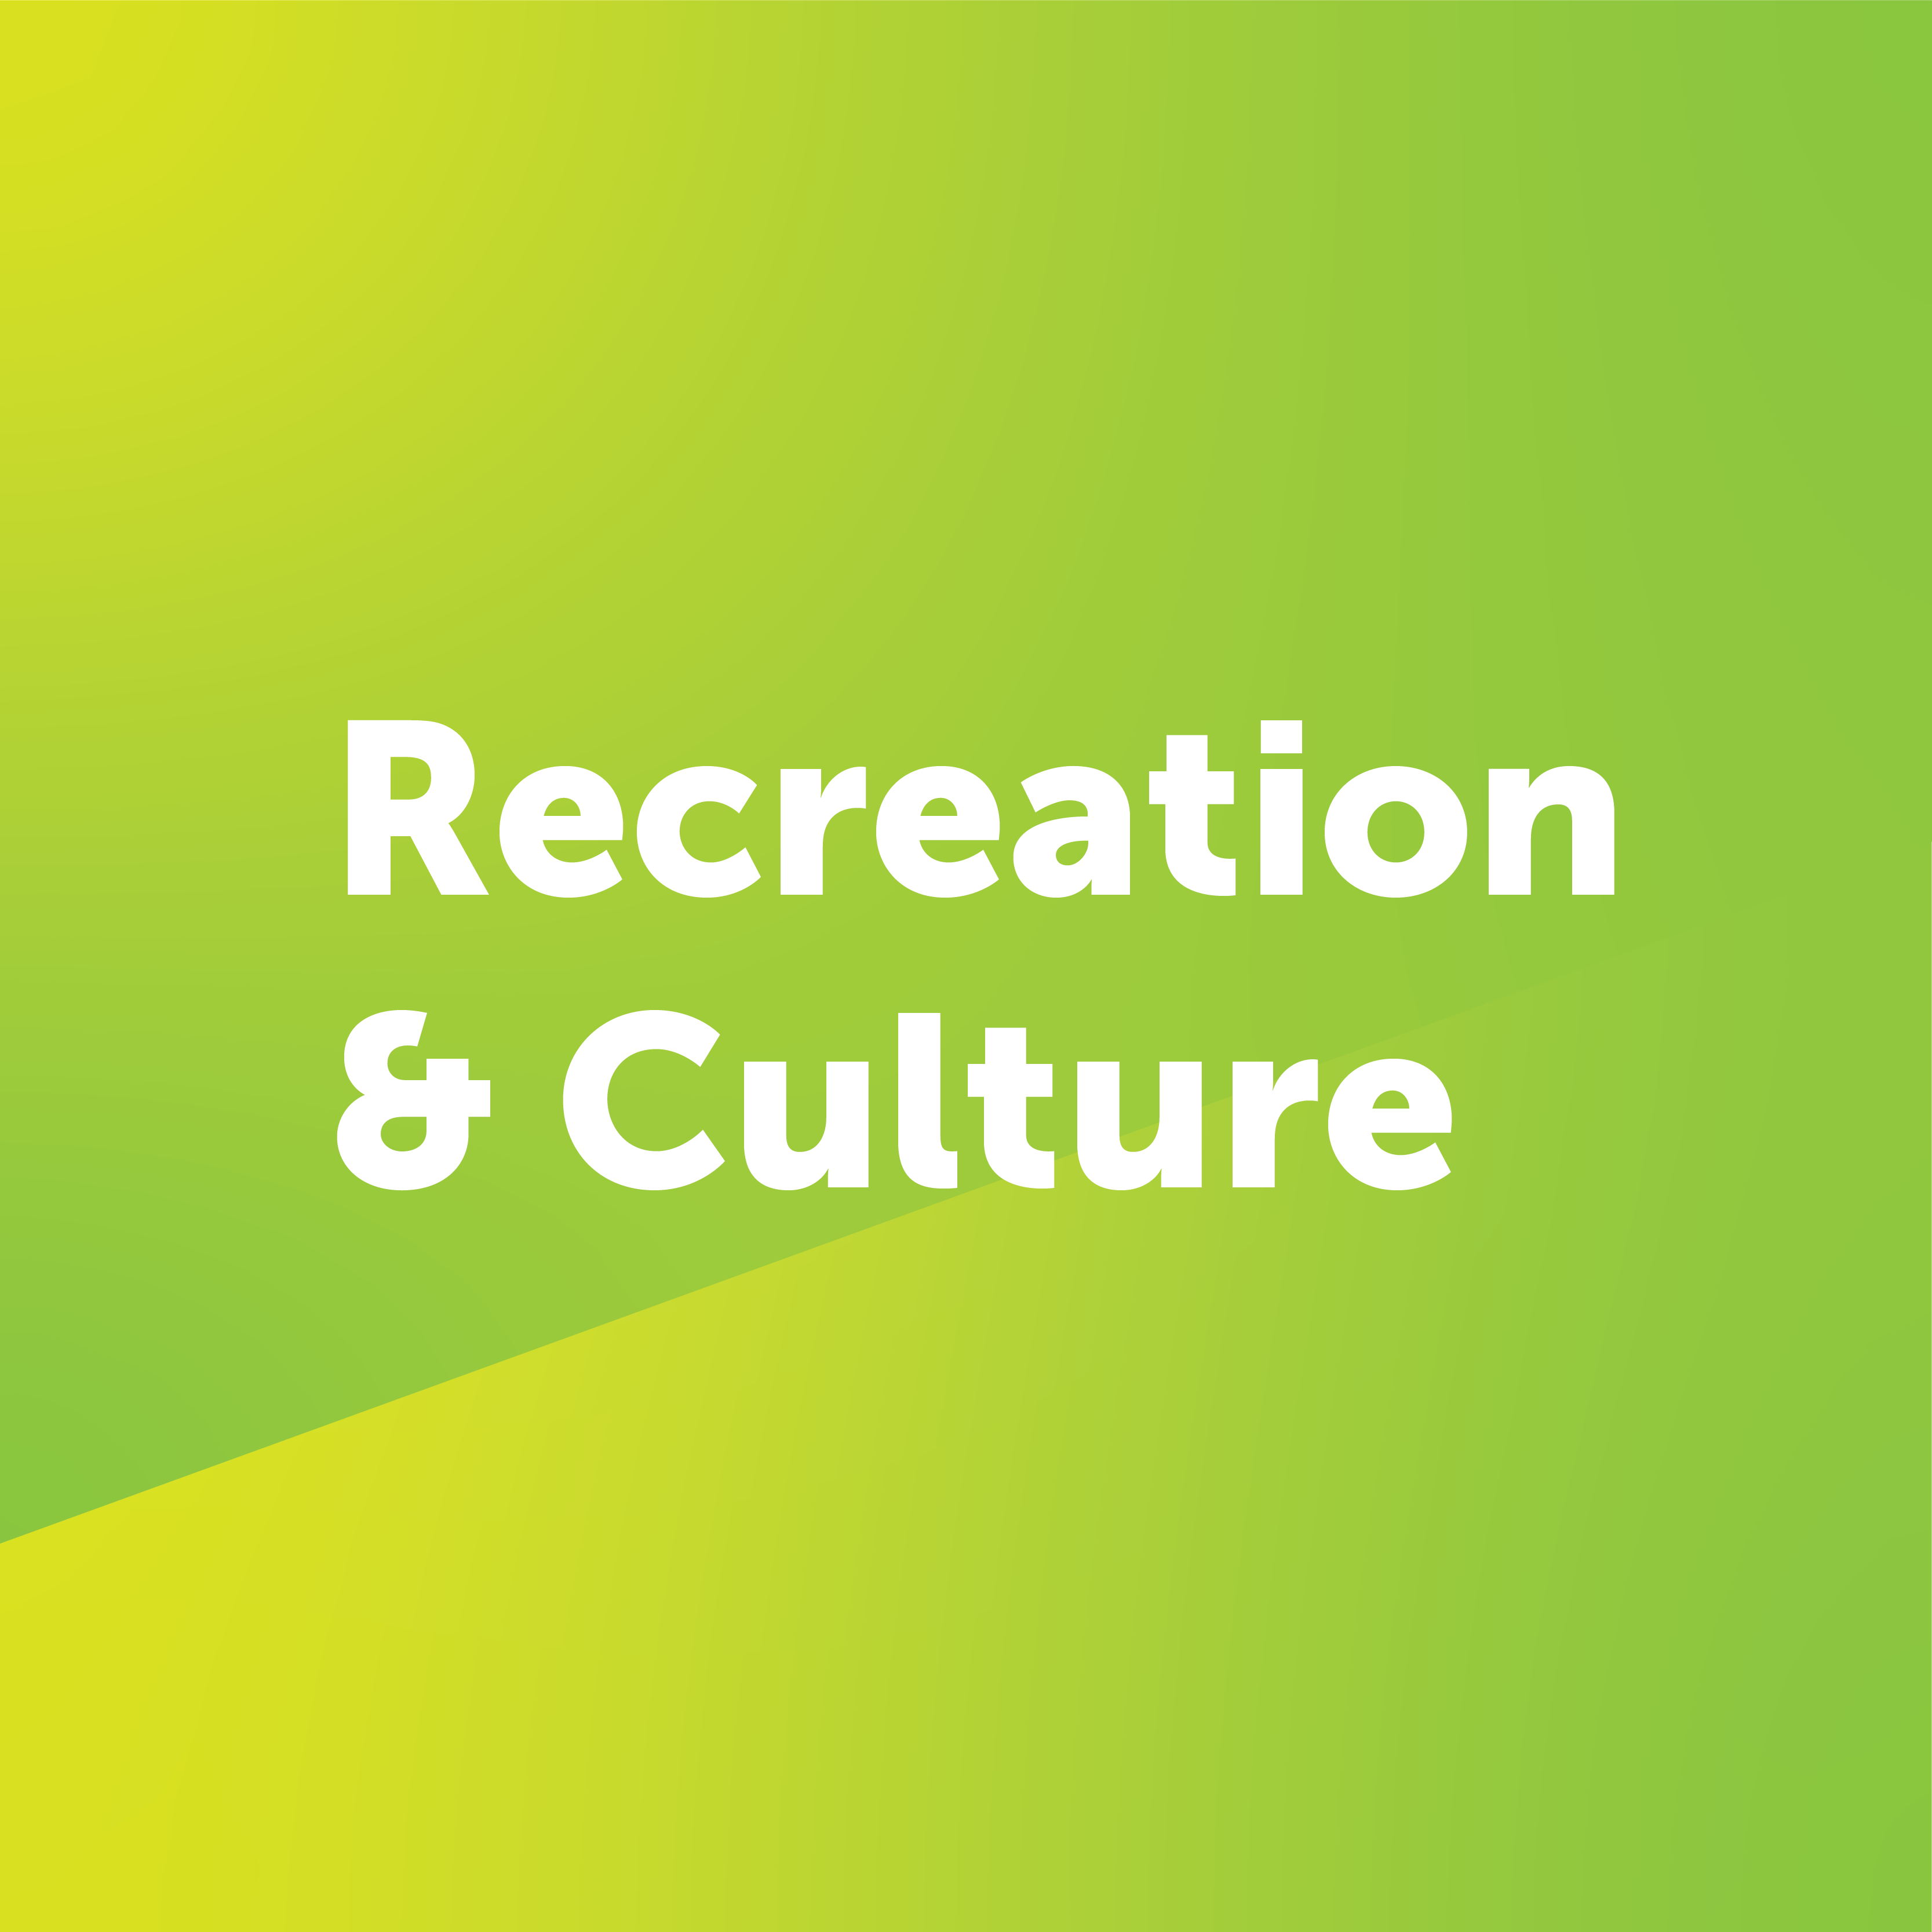 recreation and culture button